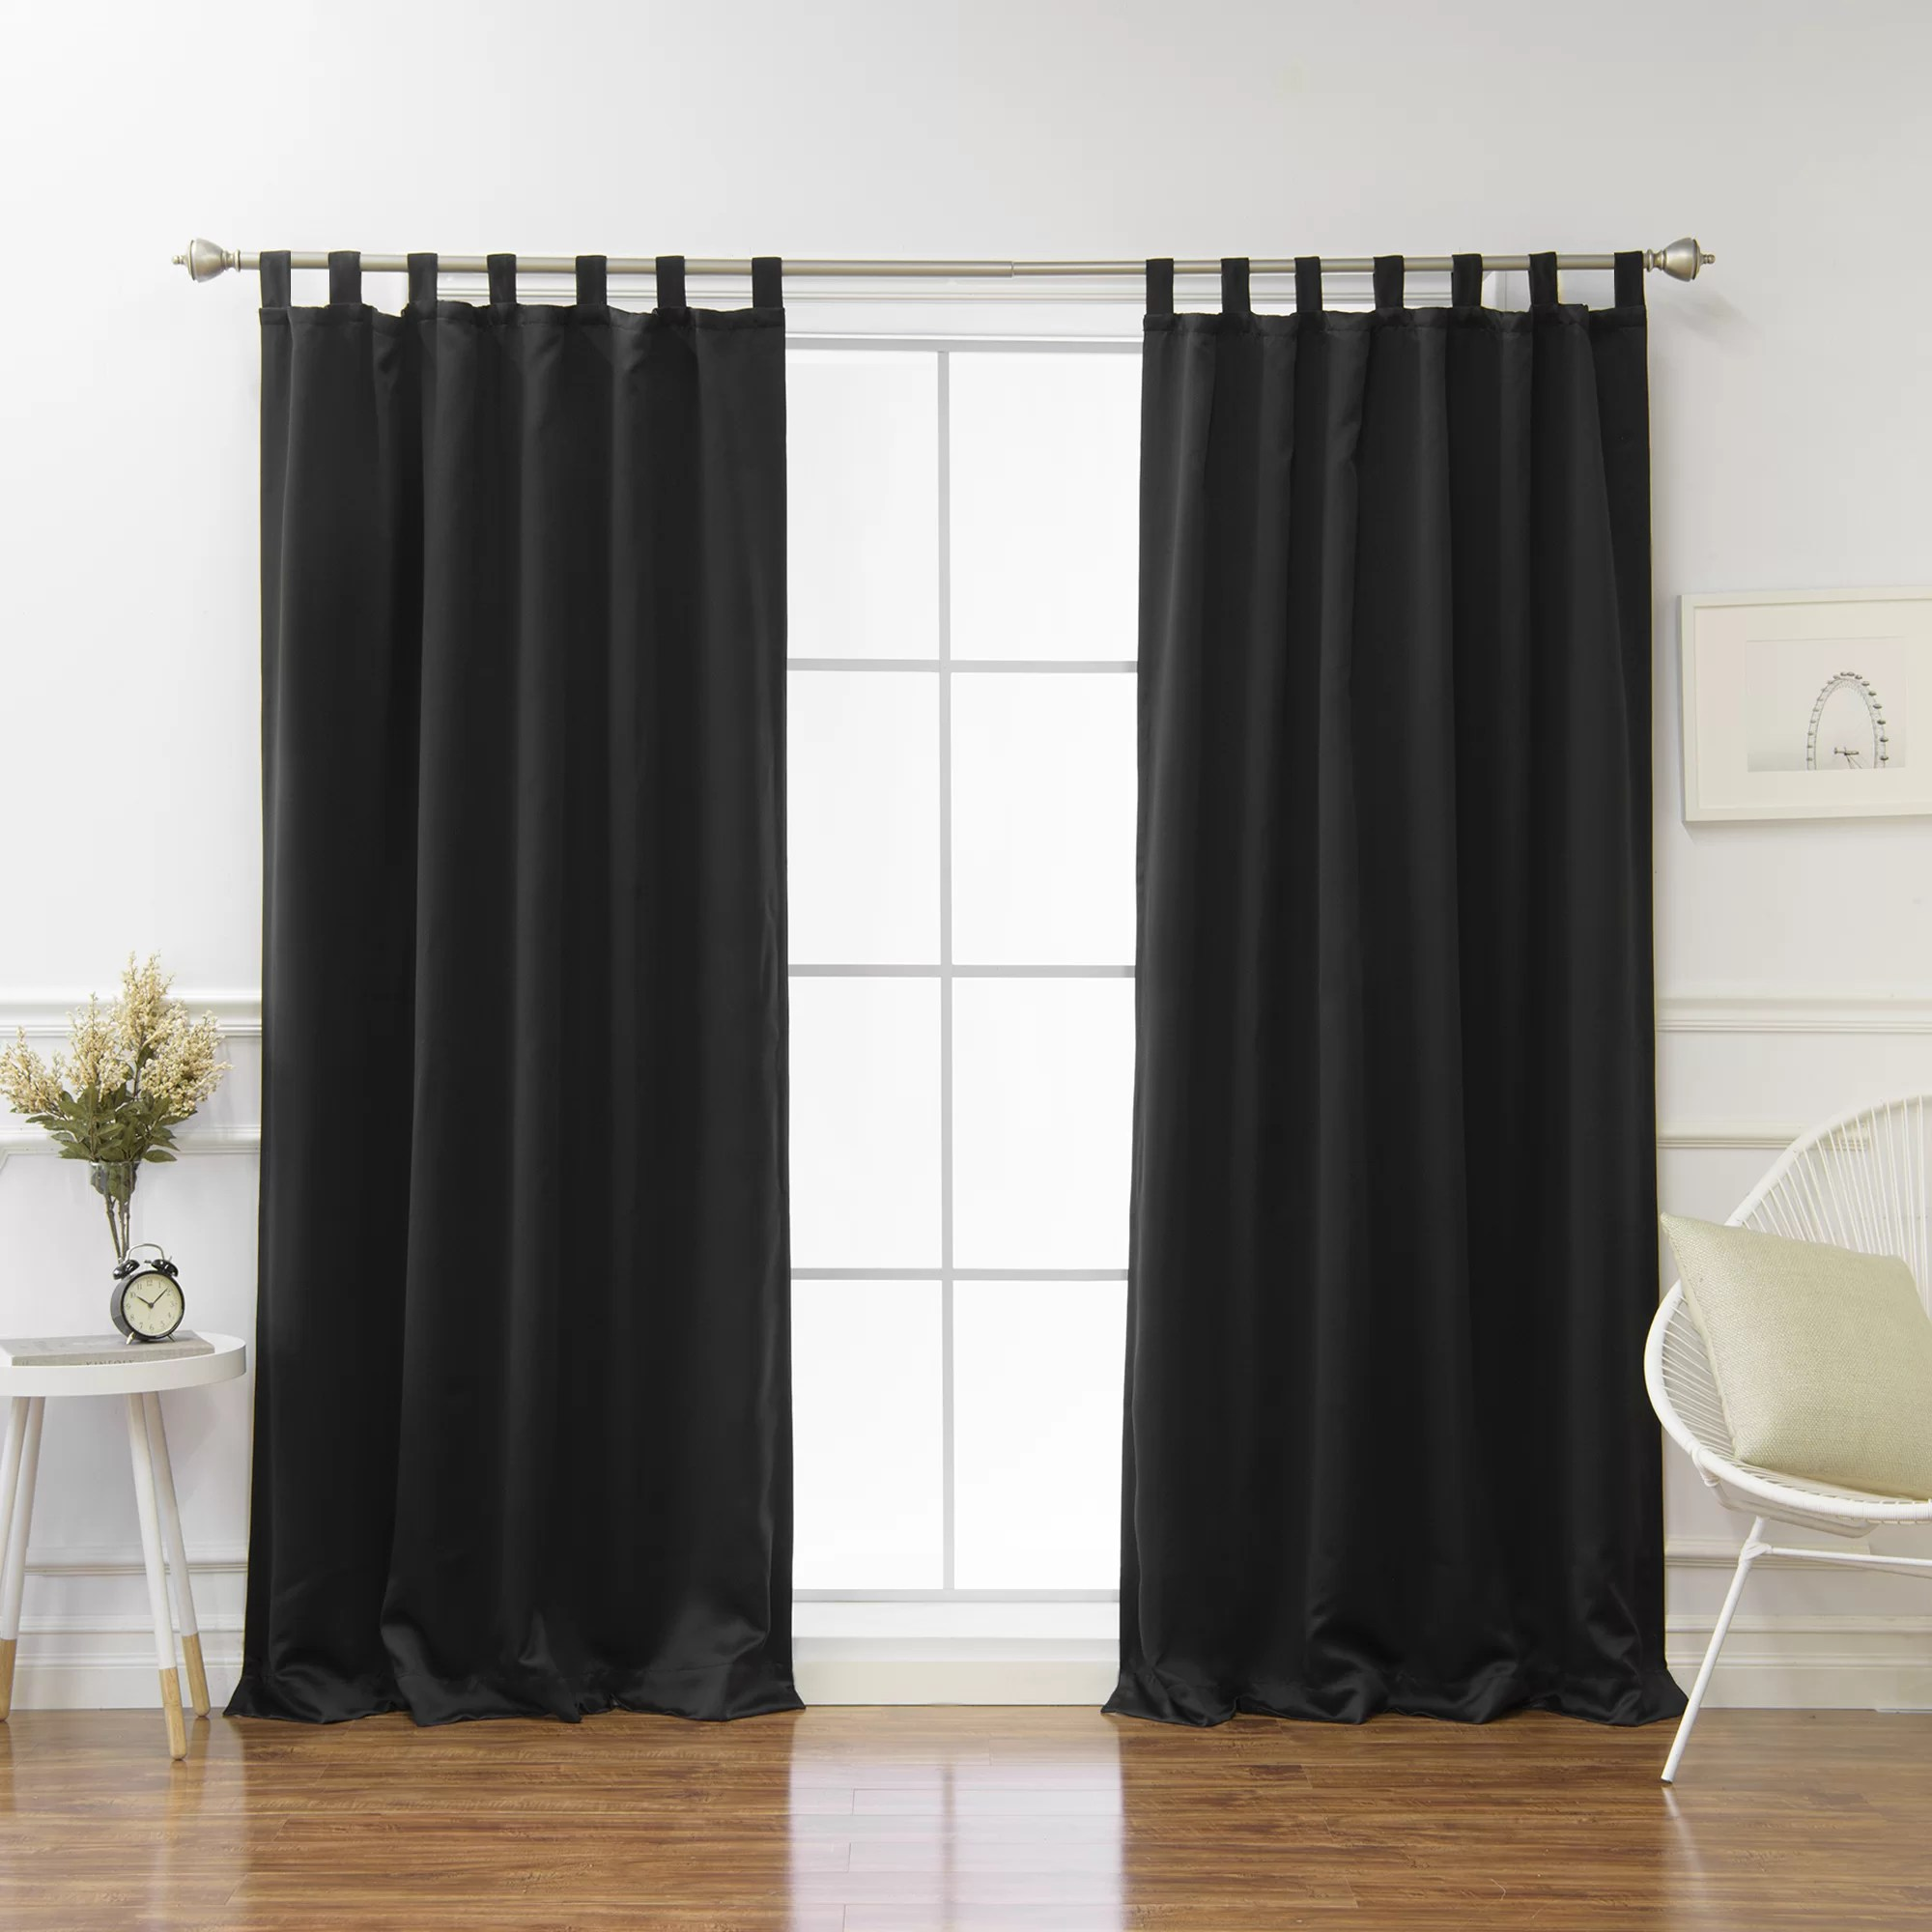 Tab Top Curtain Bennett Basic Insulated Solid Blackout Thermal Tab Top Curtain Panels